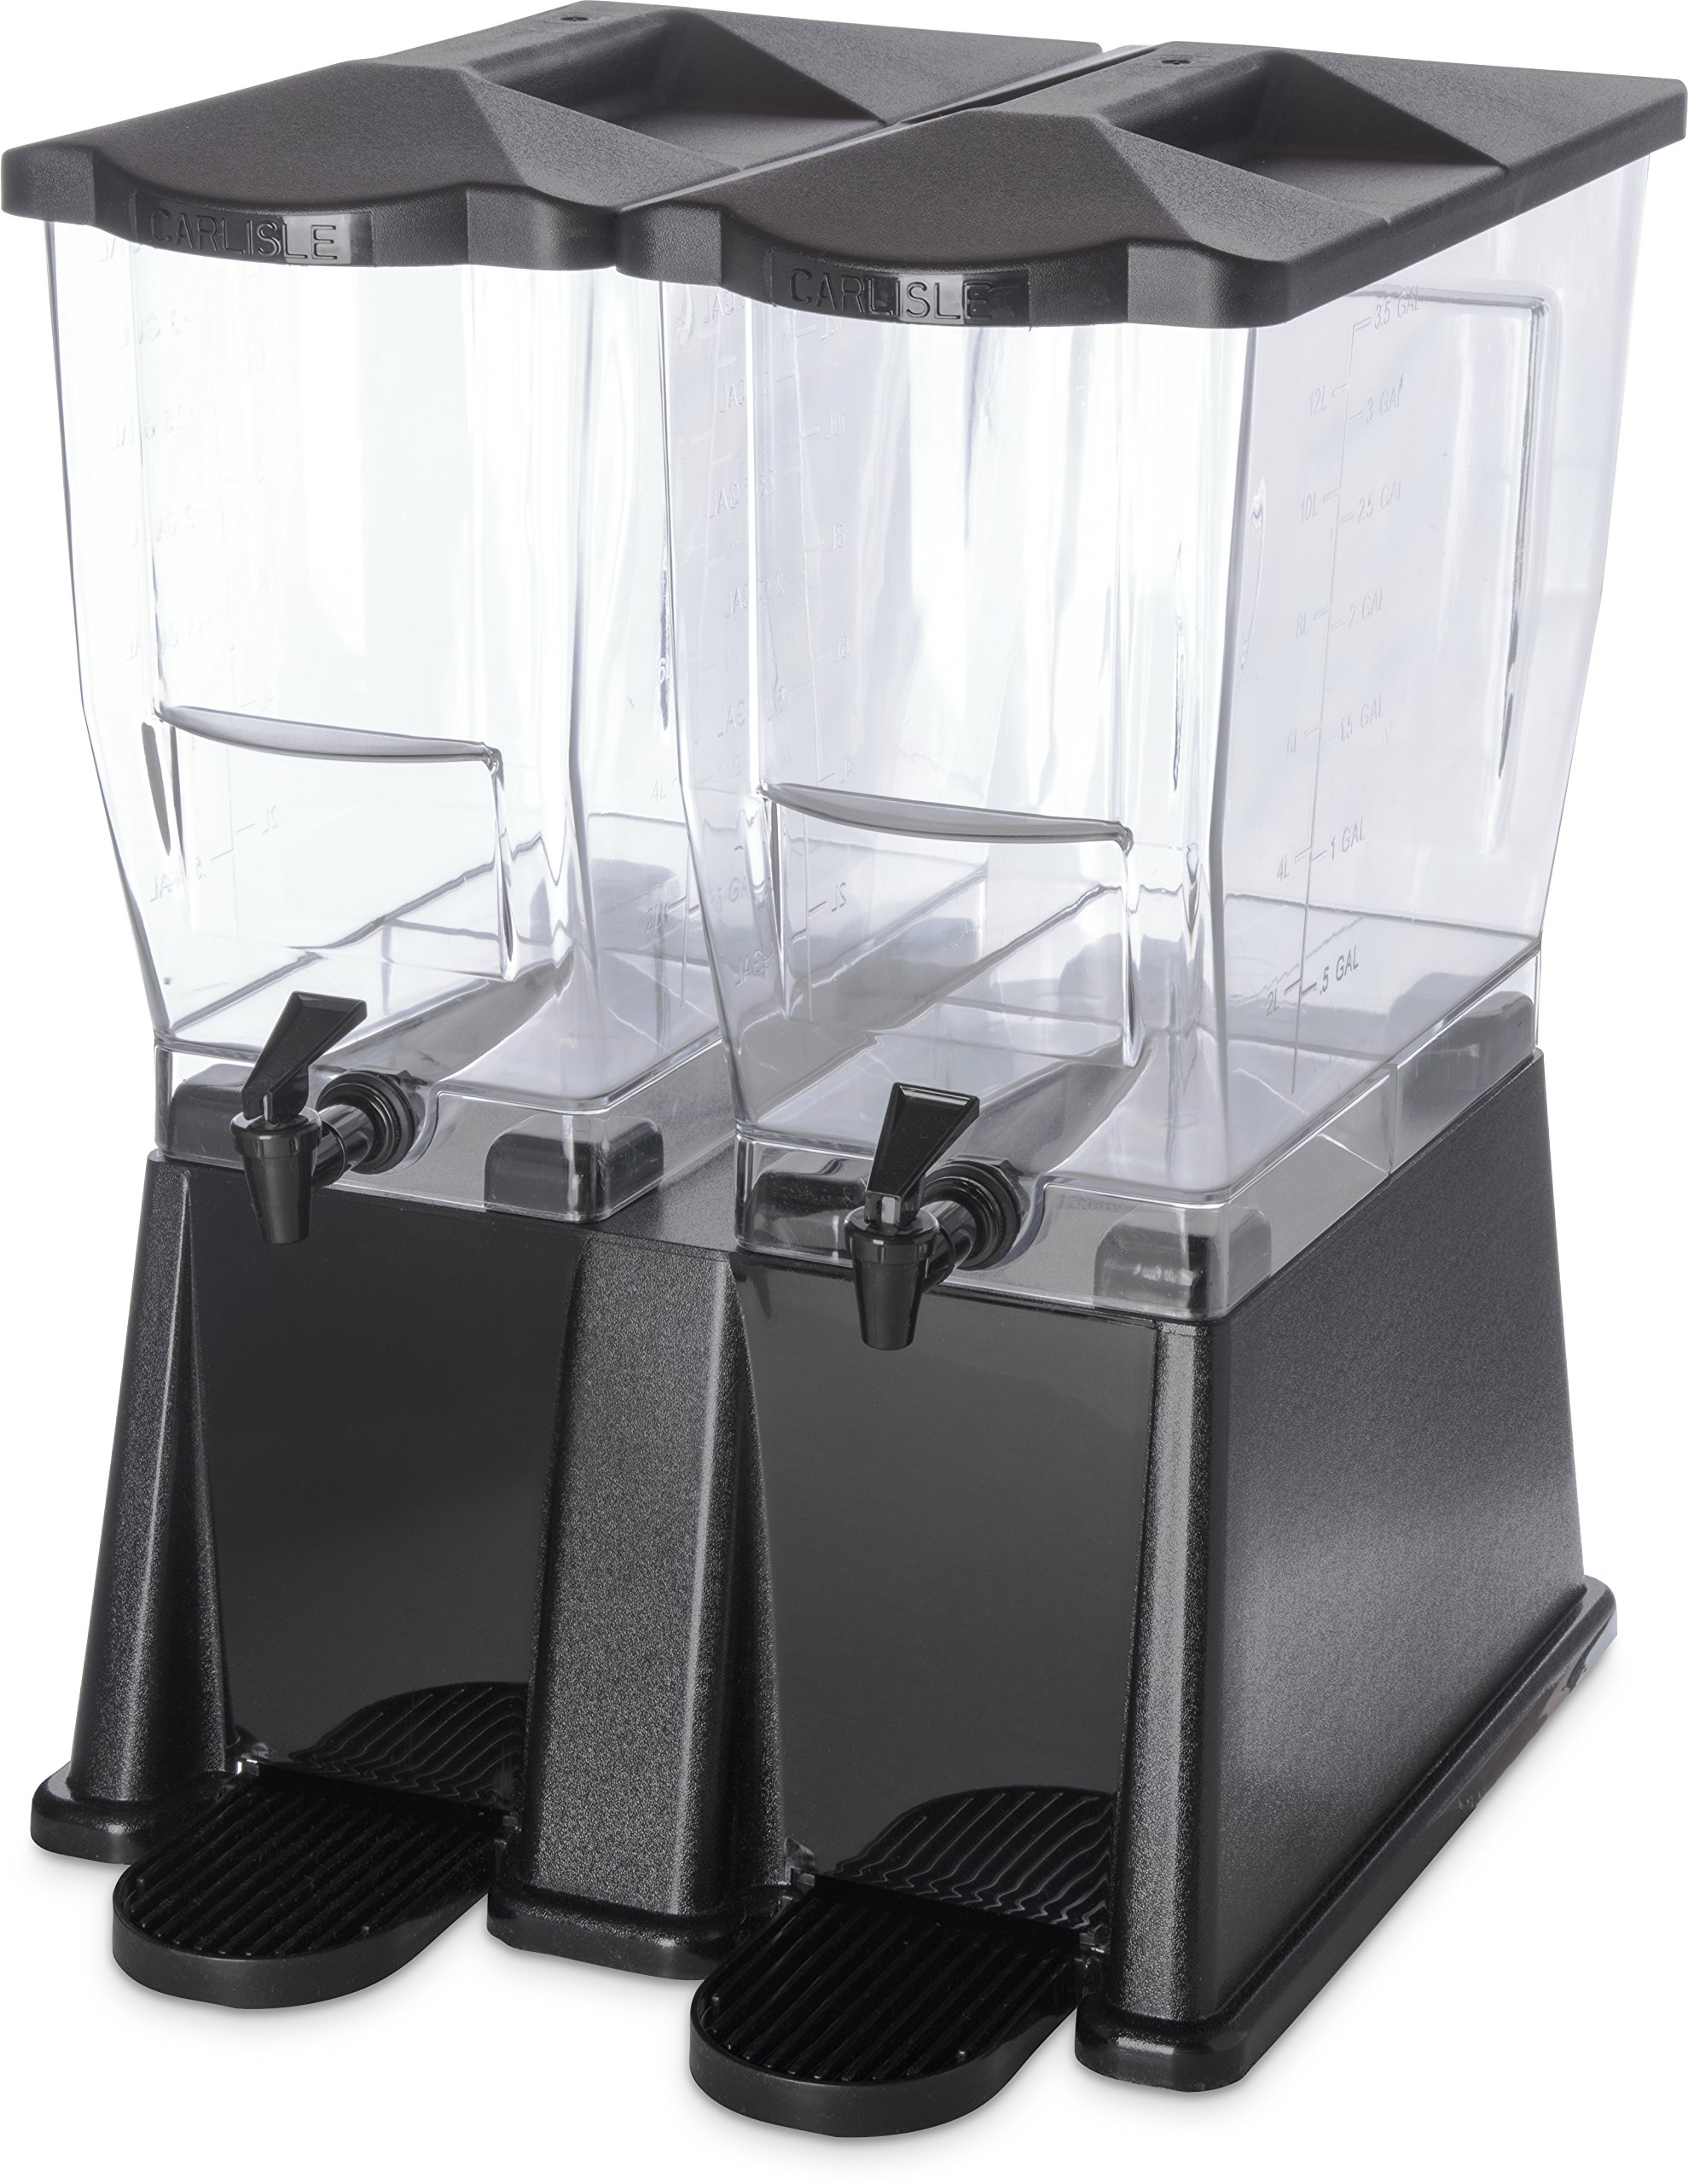 Carlisle 1085303 TrimLine Clear Economy Double Base, 7 gal. Capacity, Black by Carlisle